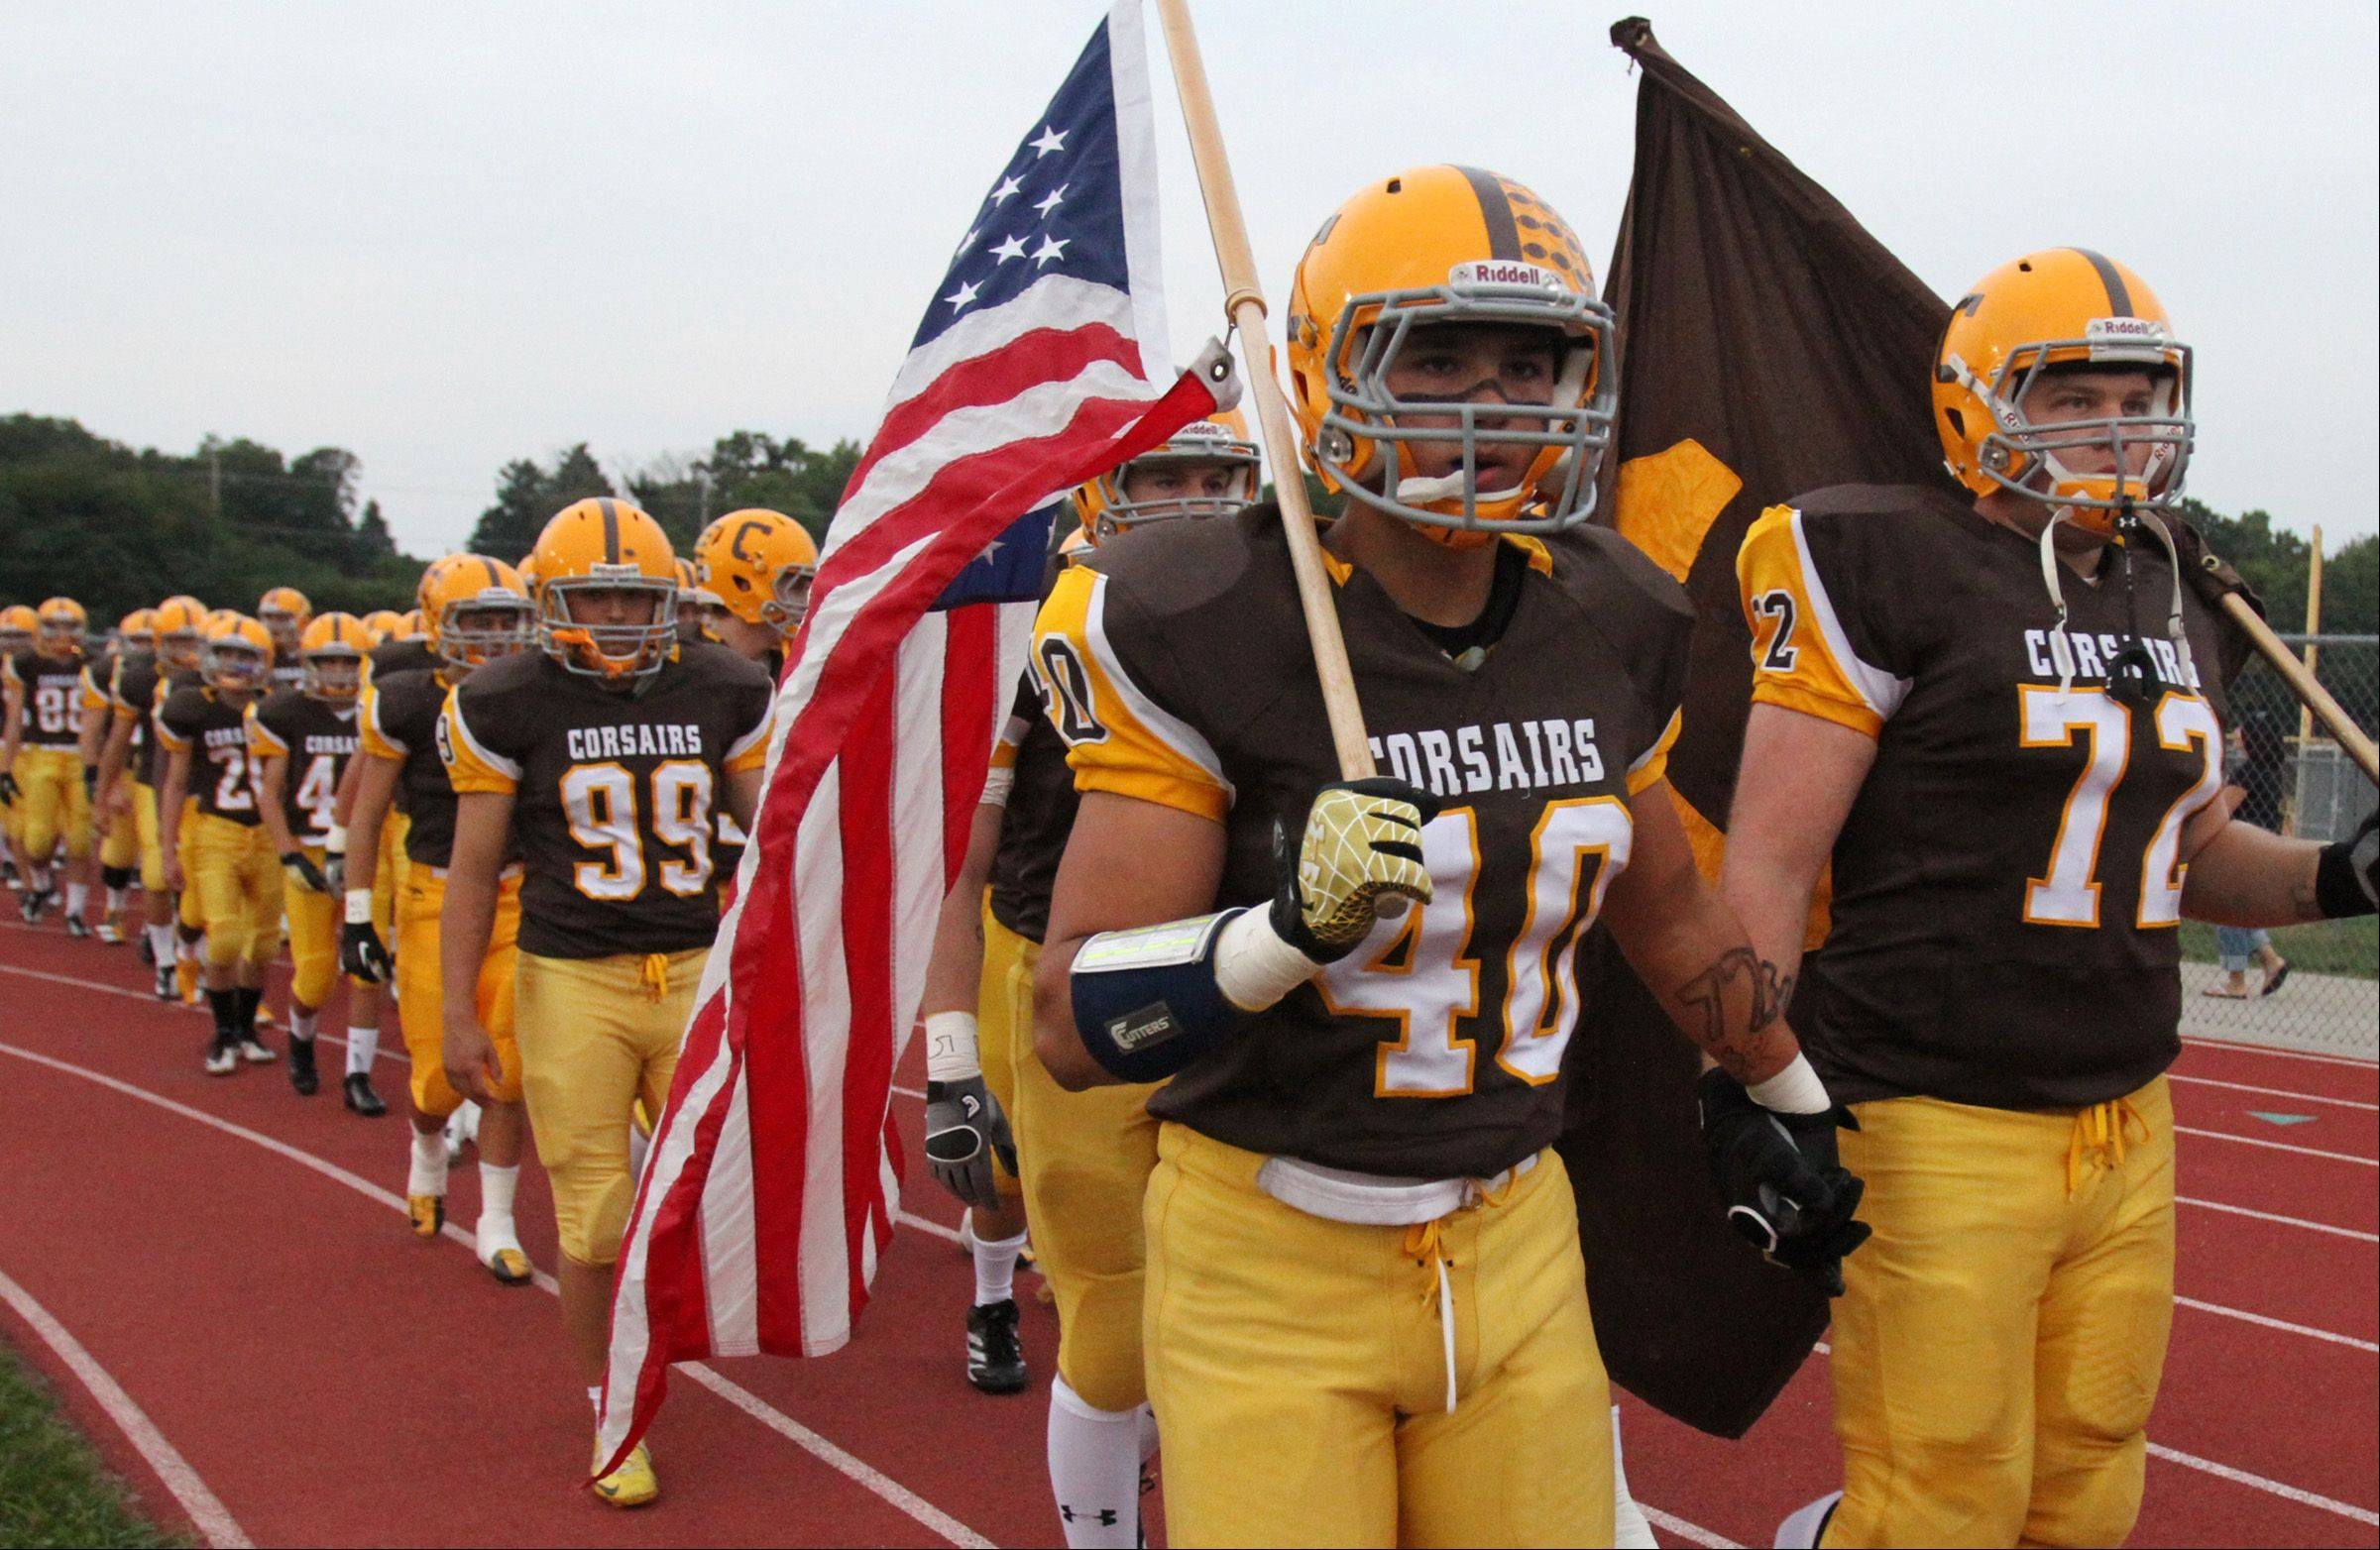 Carmel's Brett Blum cares the American flag and teammate Matt Crisp cares the Carmel High School flag before their game against Glenbard North at Carmel on Friday.